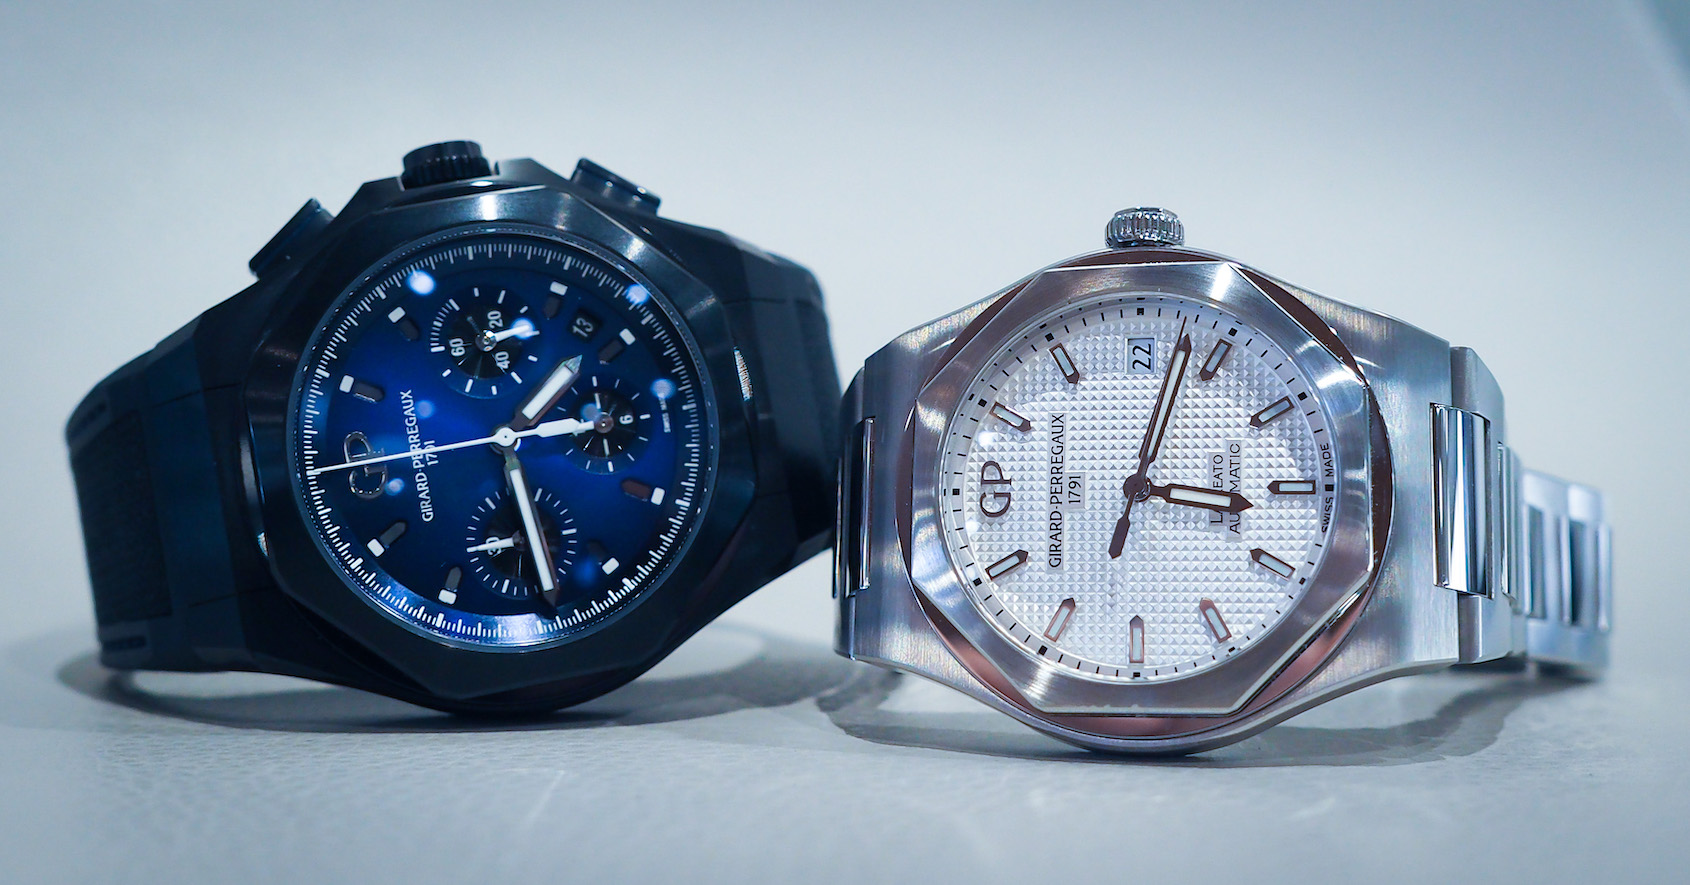 IN-DEPTH: Girard-Perregaux Laureato Vs. the Laureato Absolute Chronograph – the Beauty and The Beast